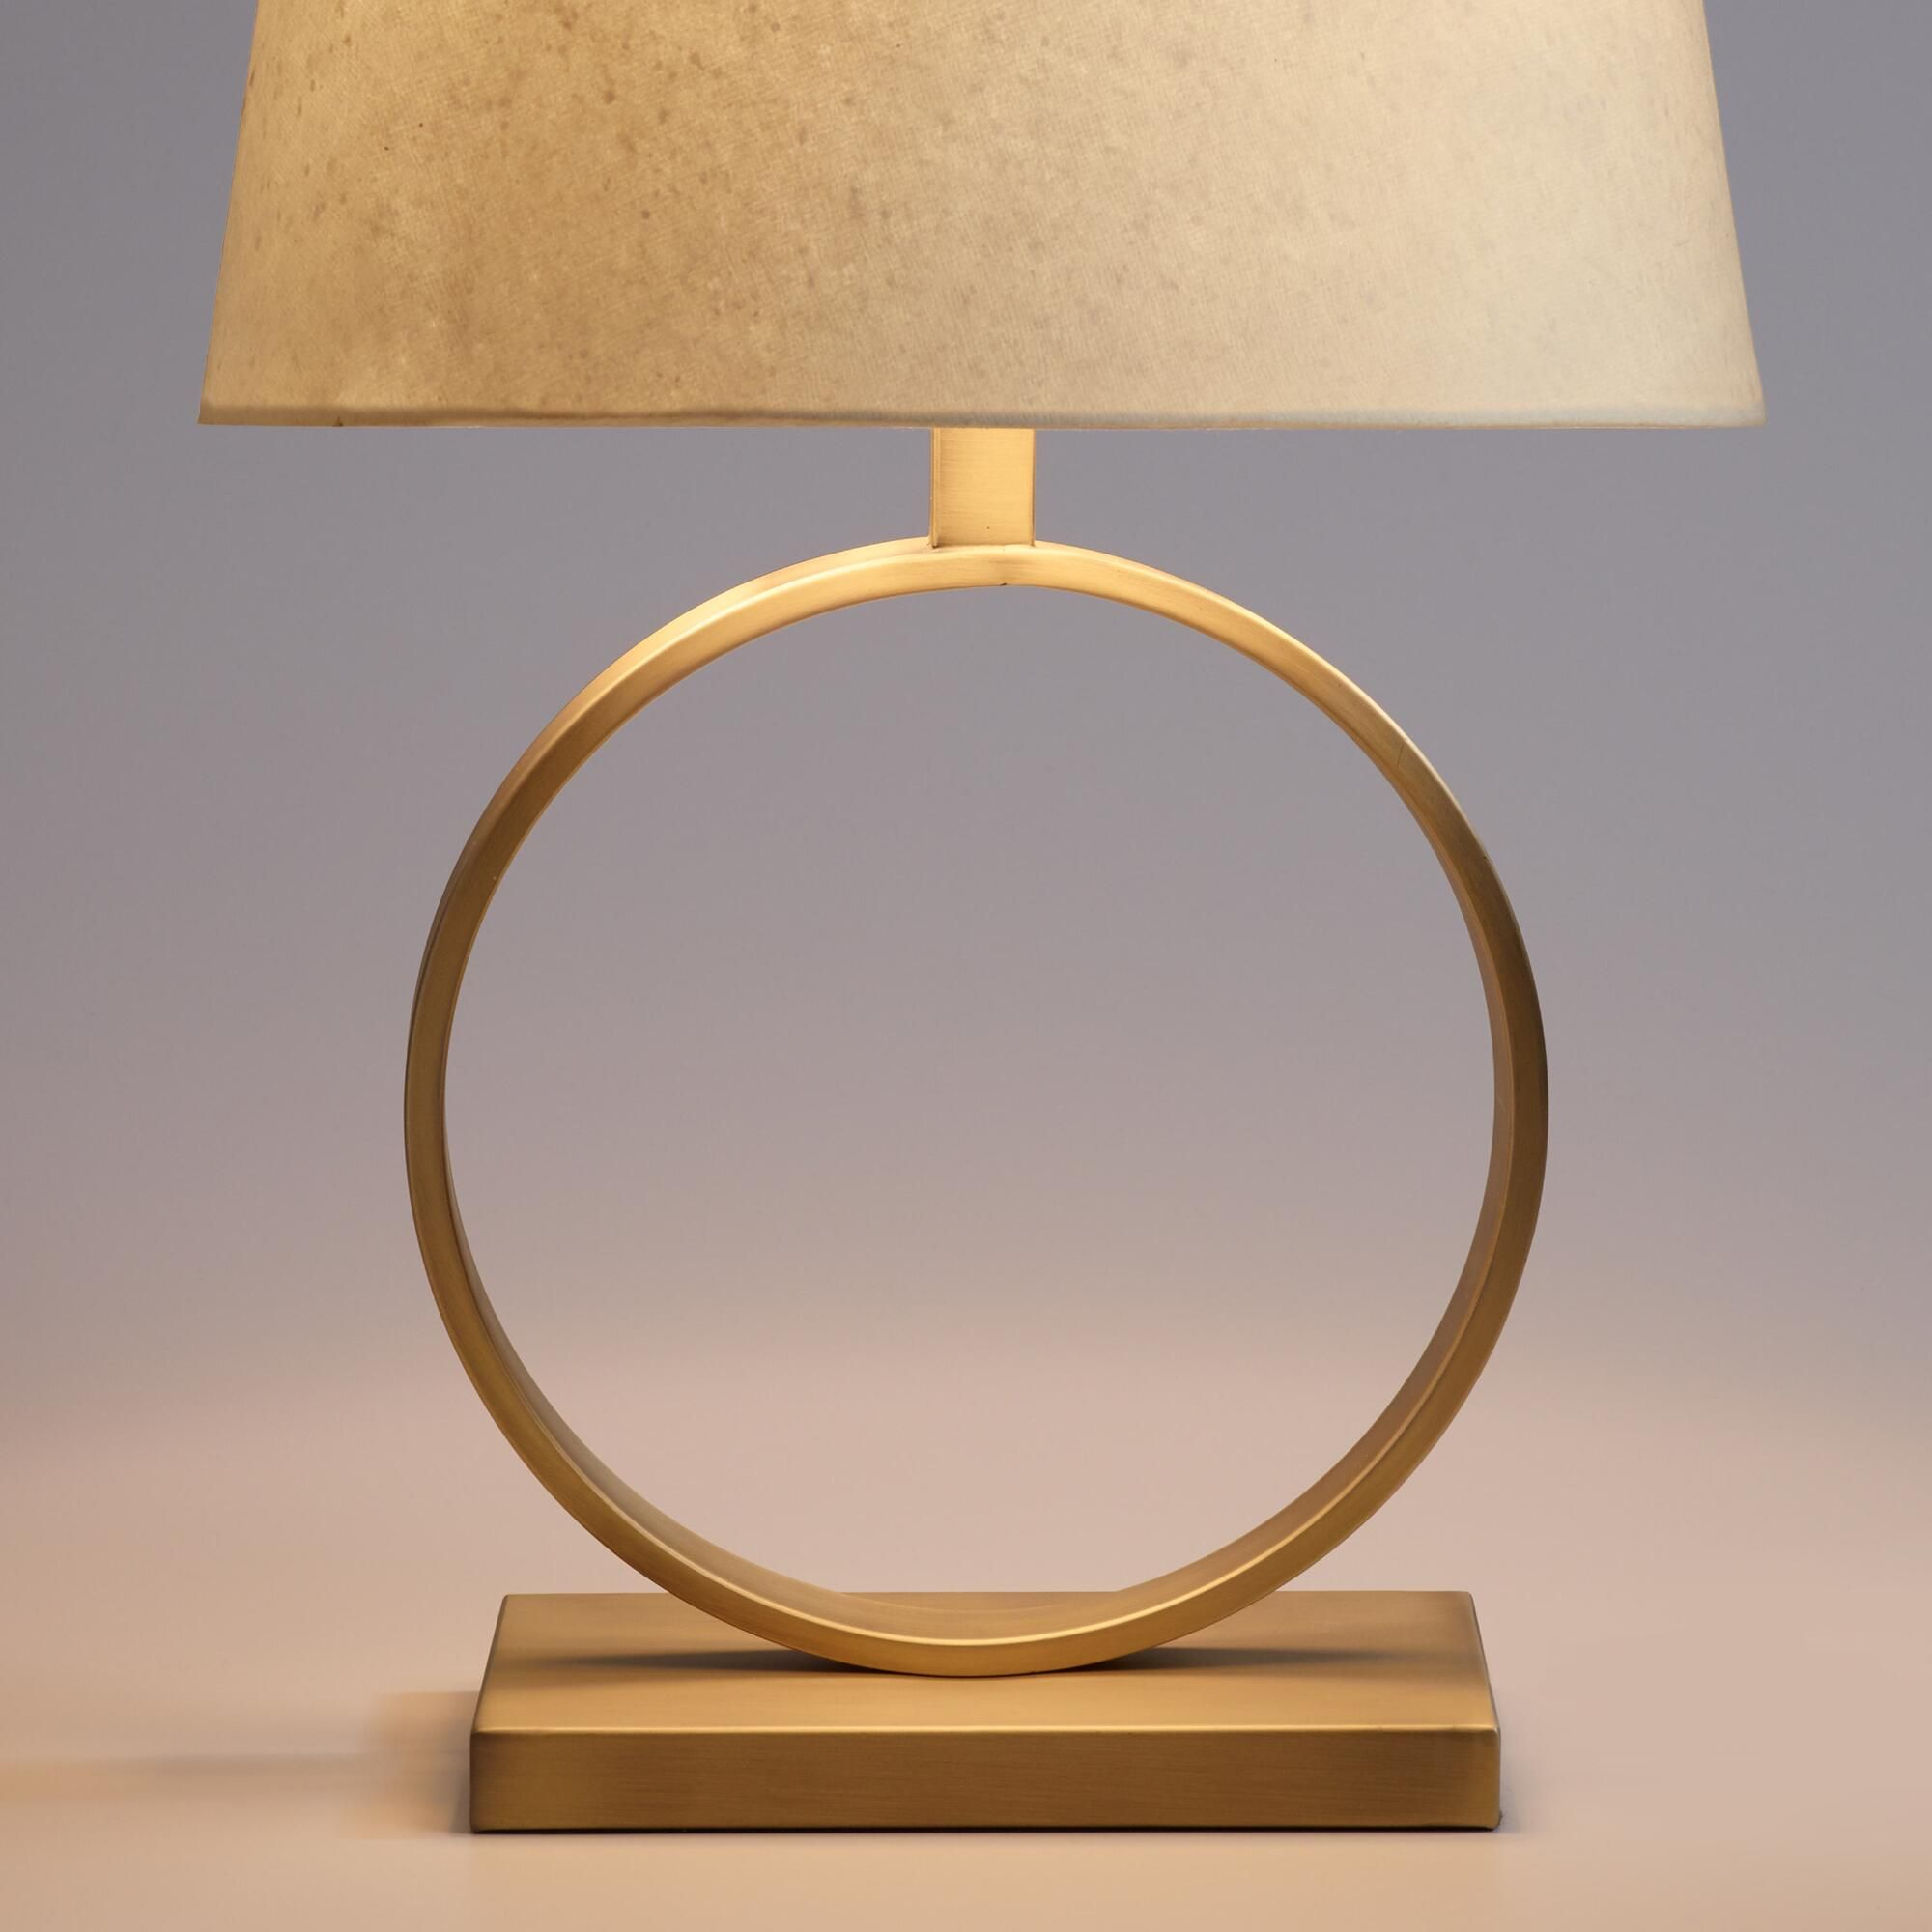 Circular brass sloane table lamp base mid century modern circular brass sloane table lamp base mozeypictures Image collections